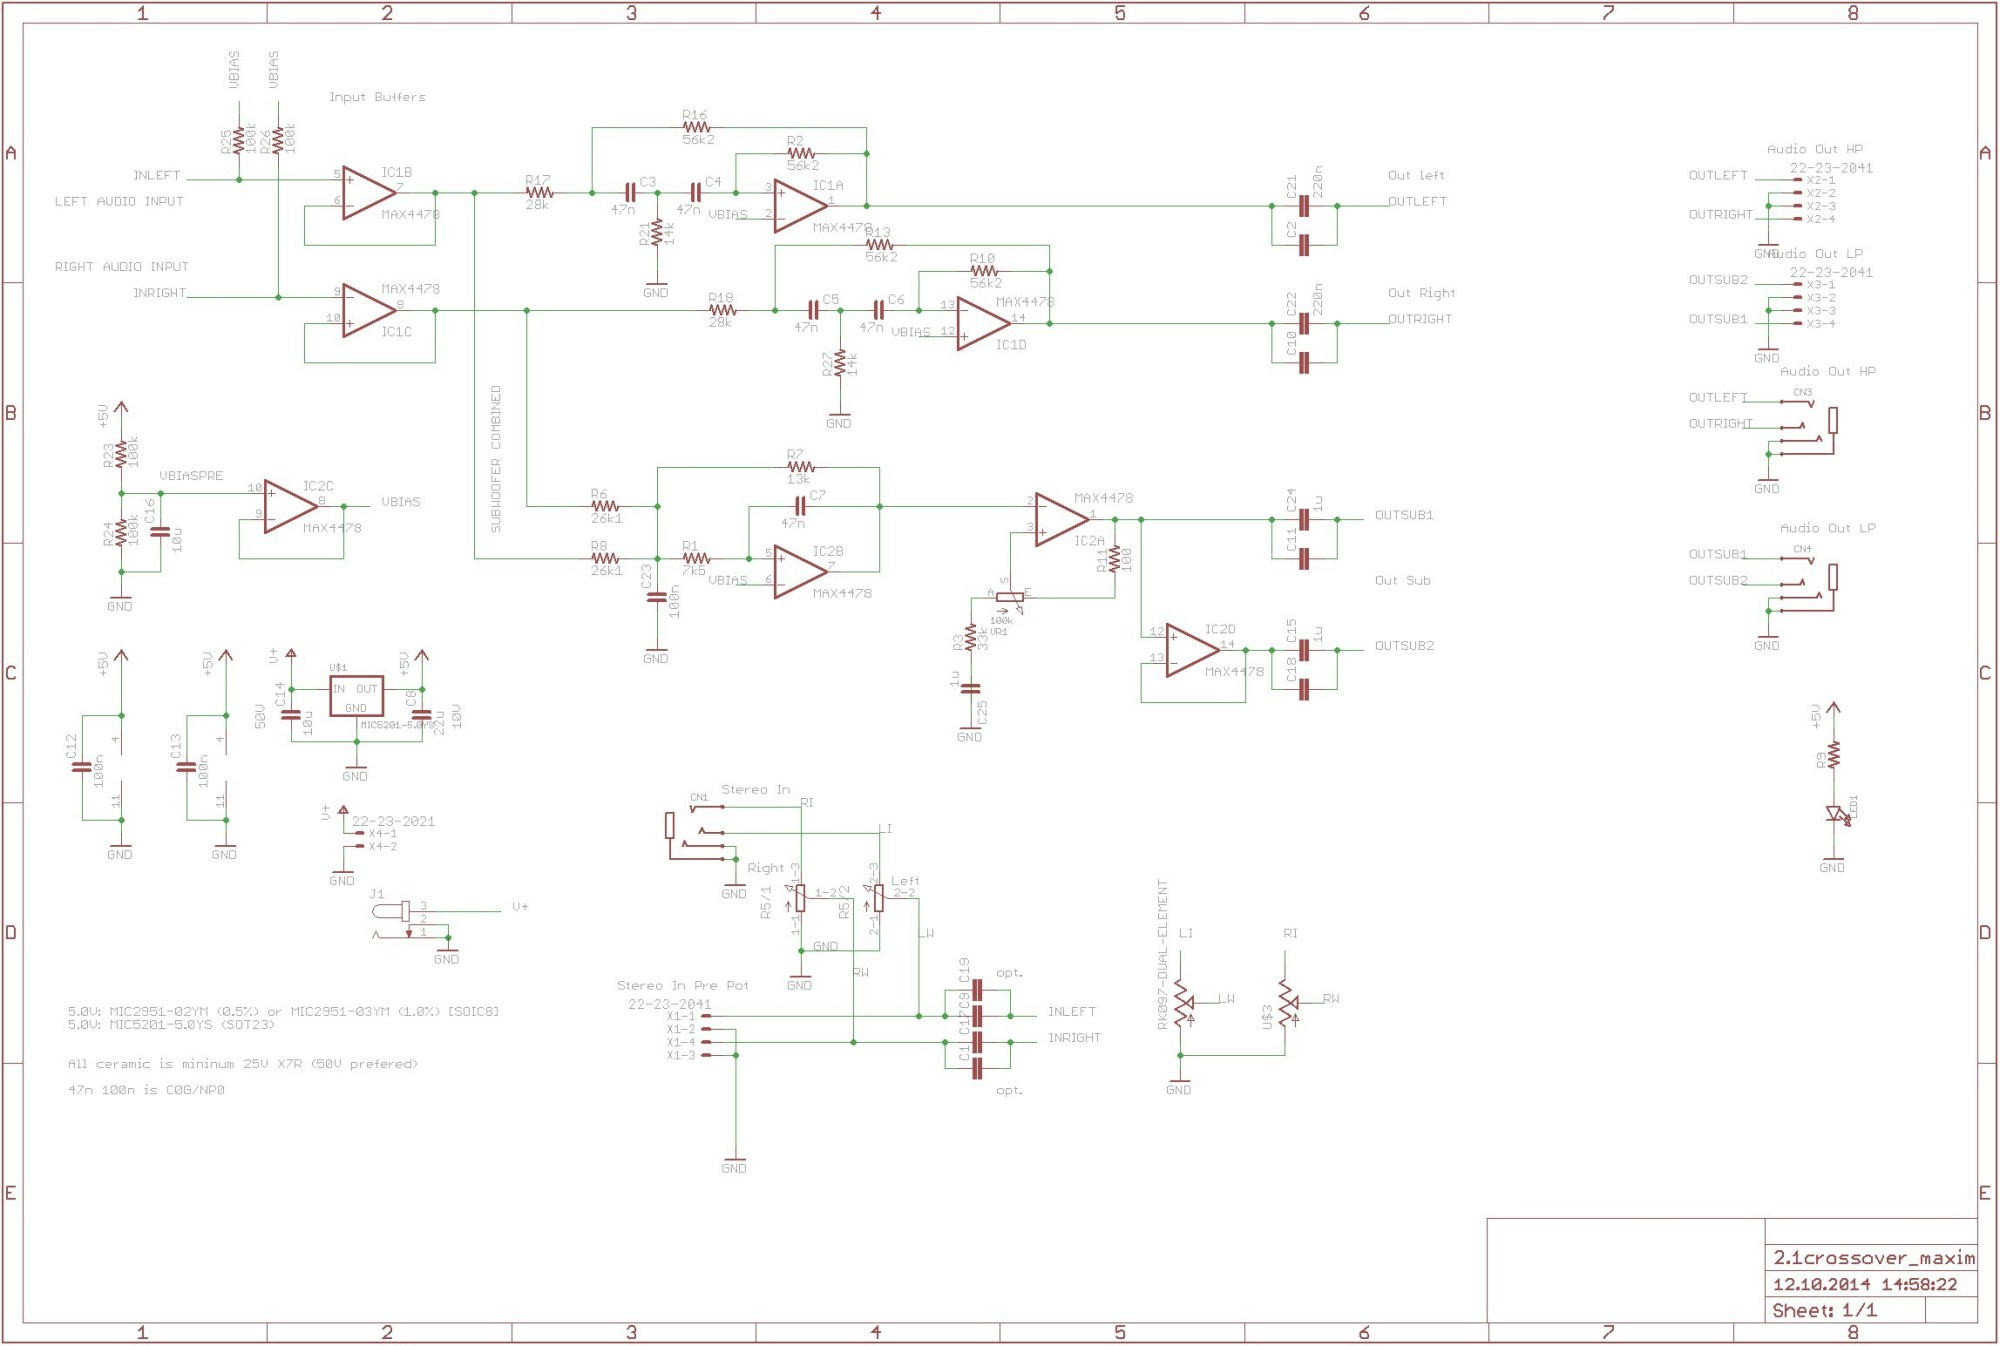 hight resolution of house wiring diagram electrical floor plan 2004 2010 bmw x3 e83 3 0dhouse wiring diagram best